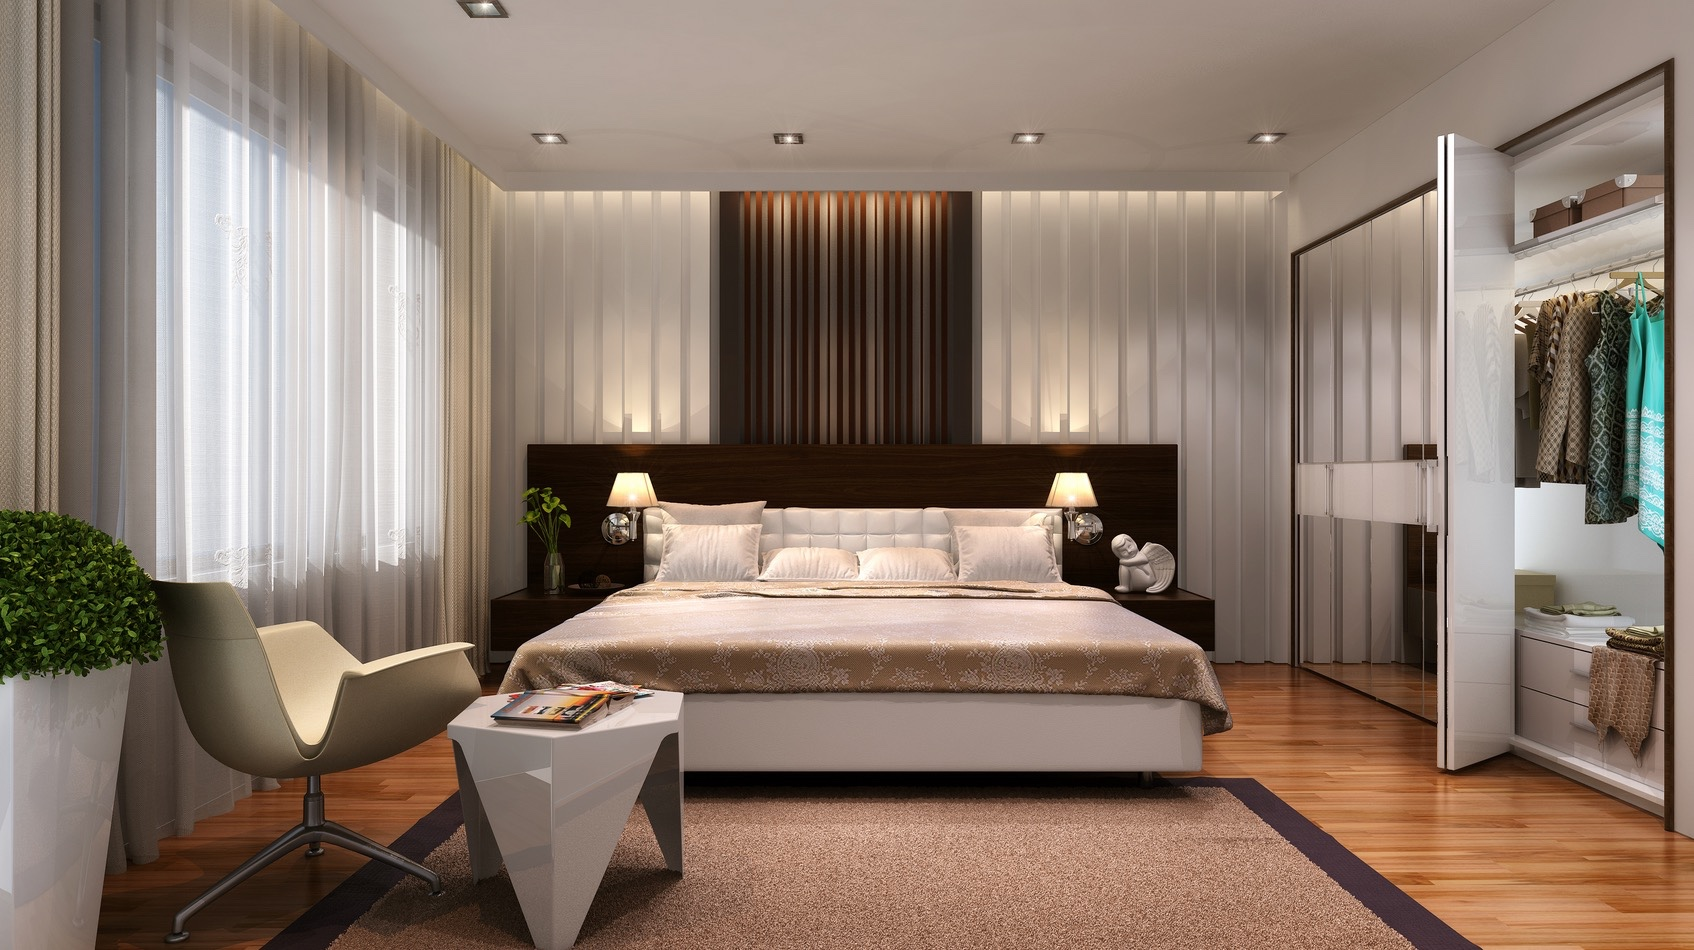 vertical stripes reflected around this bedroom make it feel taller and